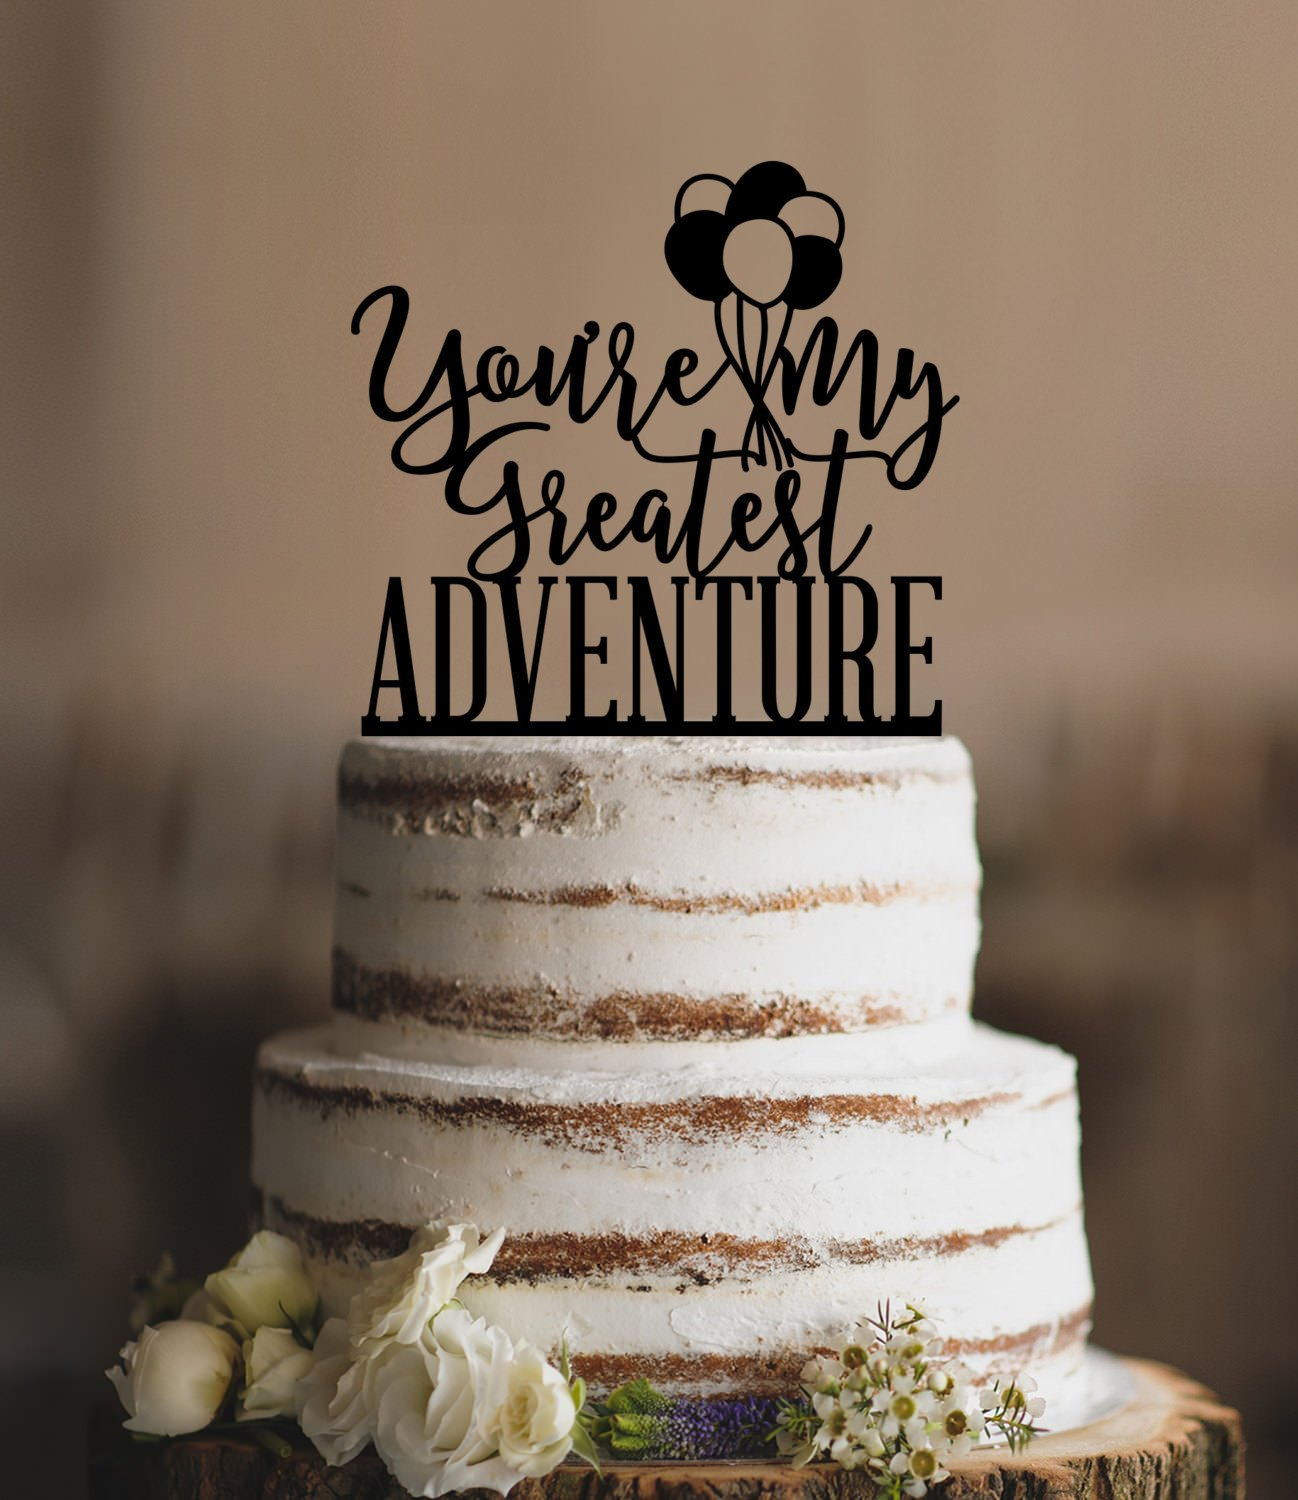 Up Youre My Greatest Adventure Up Wedding Up Movie Balloon Funny Wedding Cake Topper Bride And Groom Present For Wedding Decortions Rustic Bridal Shower Gifts